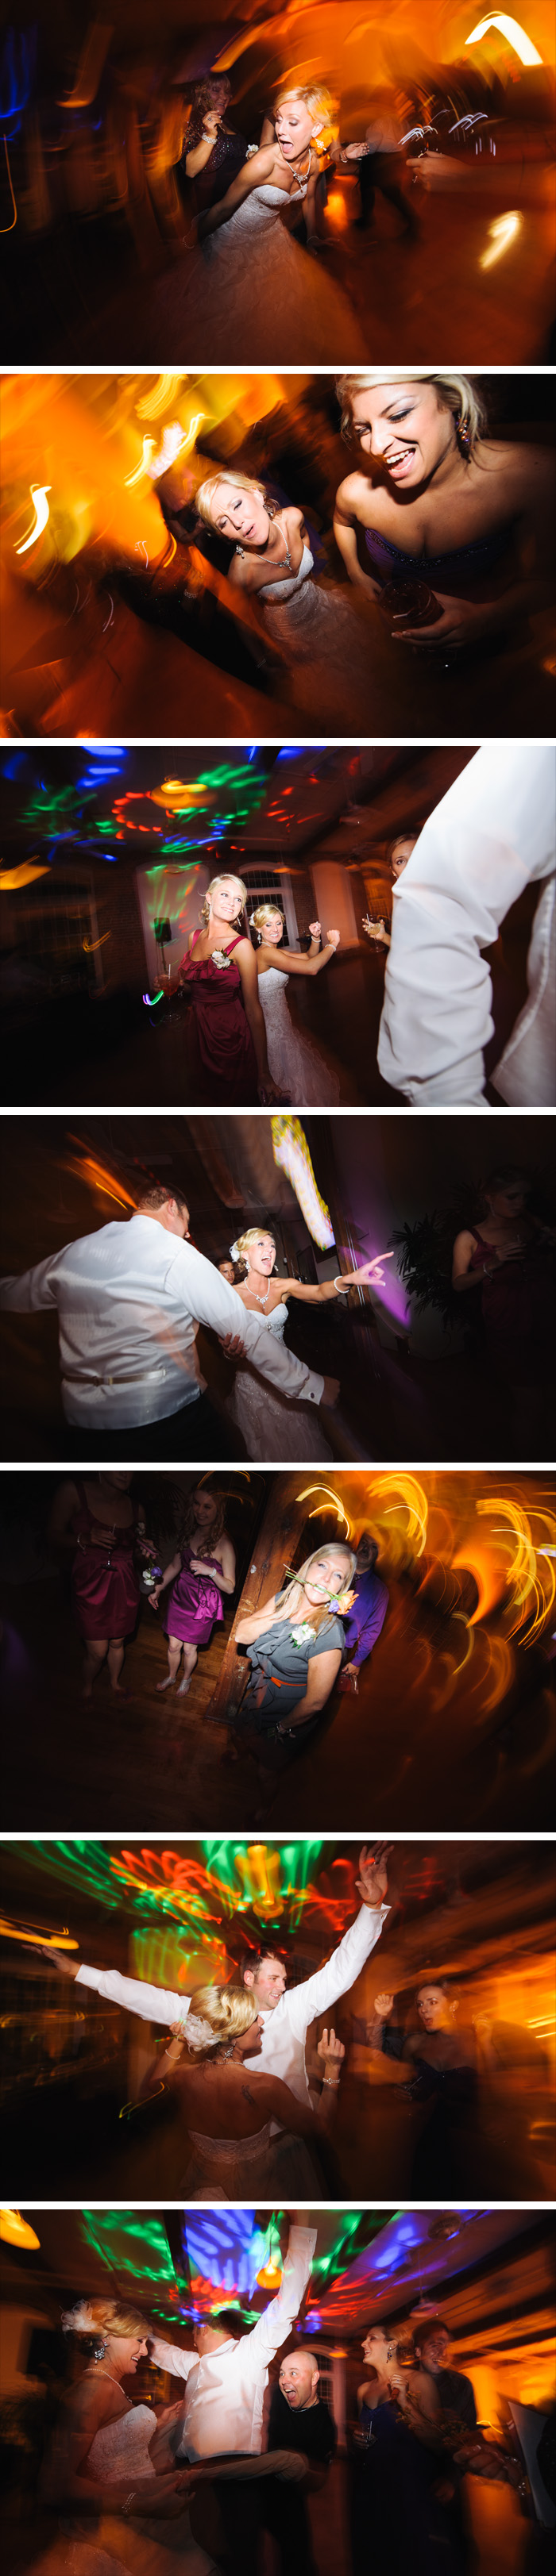 dancing 2 Stacey + Patrick | Greensboro, NC Wedding